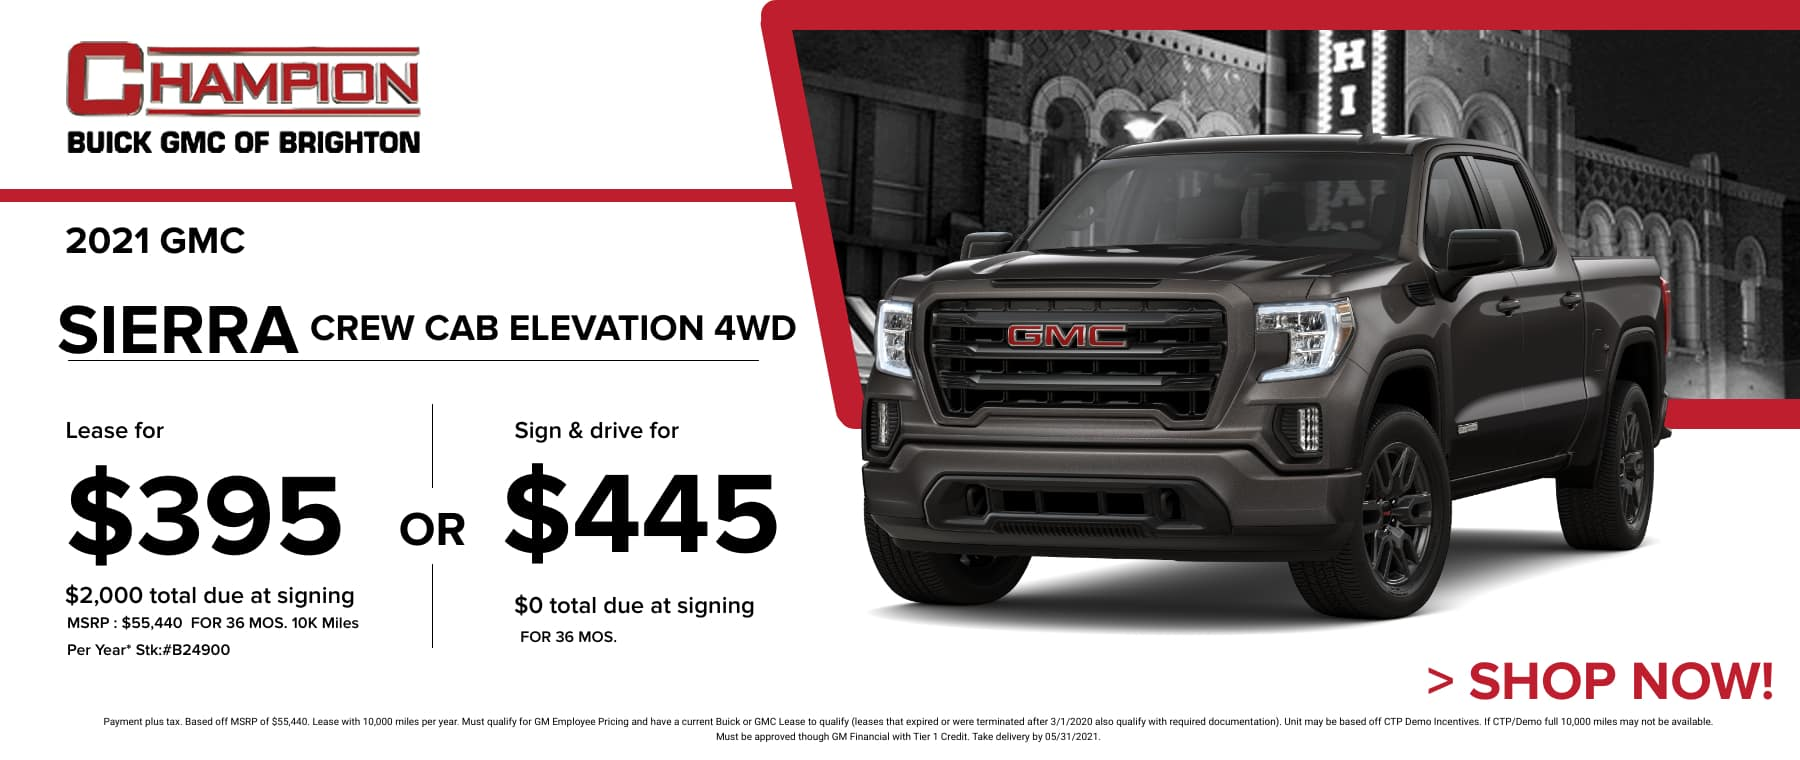 2021 GMC Sierra Crew Cab Elevation 4WD - Lease for just: $395 per month for 36 months $2,000 total due at signing. Sign & Drive for $445 per month for 36 months. *Stock #B24900. MSRP: $55,440